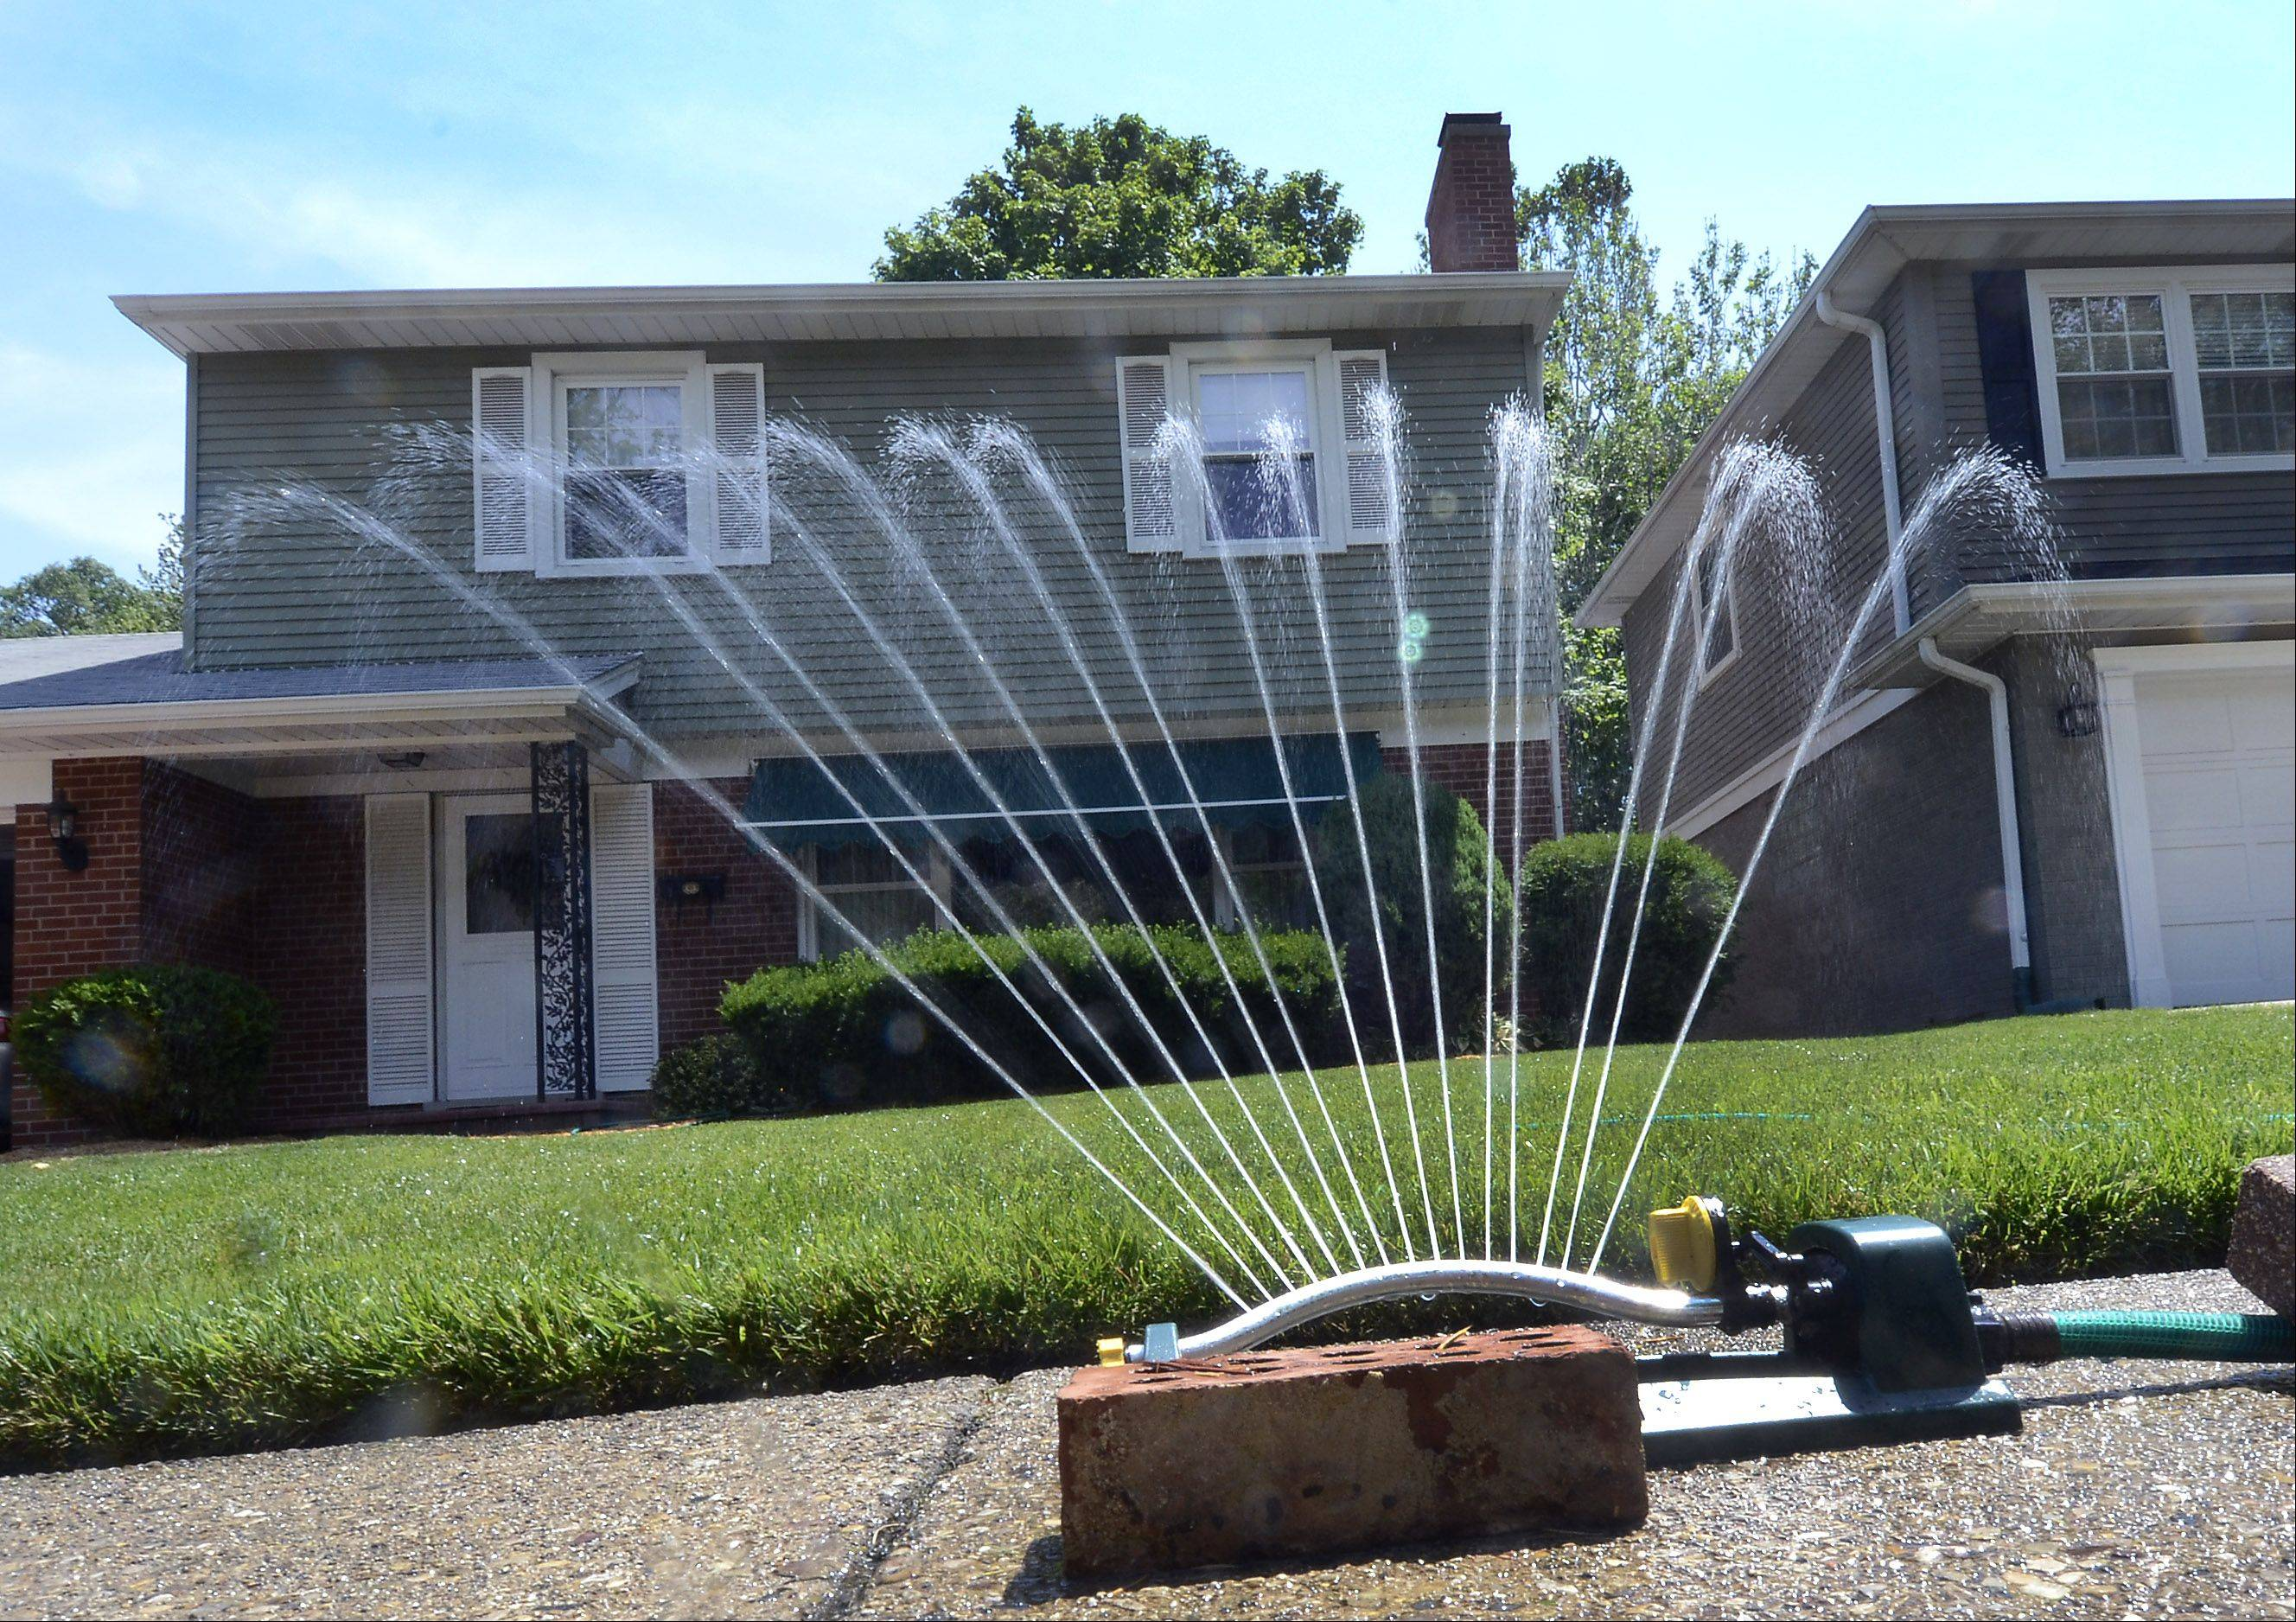 Bill Zars/bzars@dailyherald.com Some people, such as this Arlington Heights homeowner on Walnut Avenue, prefer to keep their lawns green by watering during dry spells.